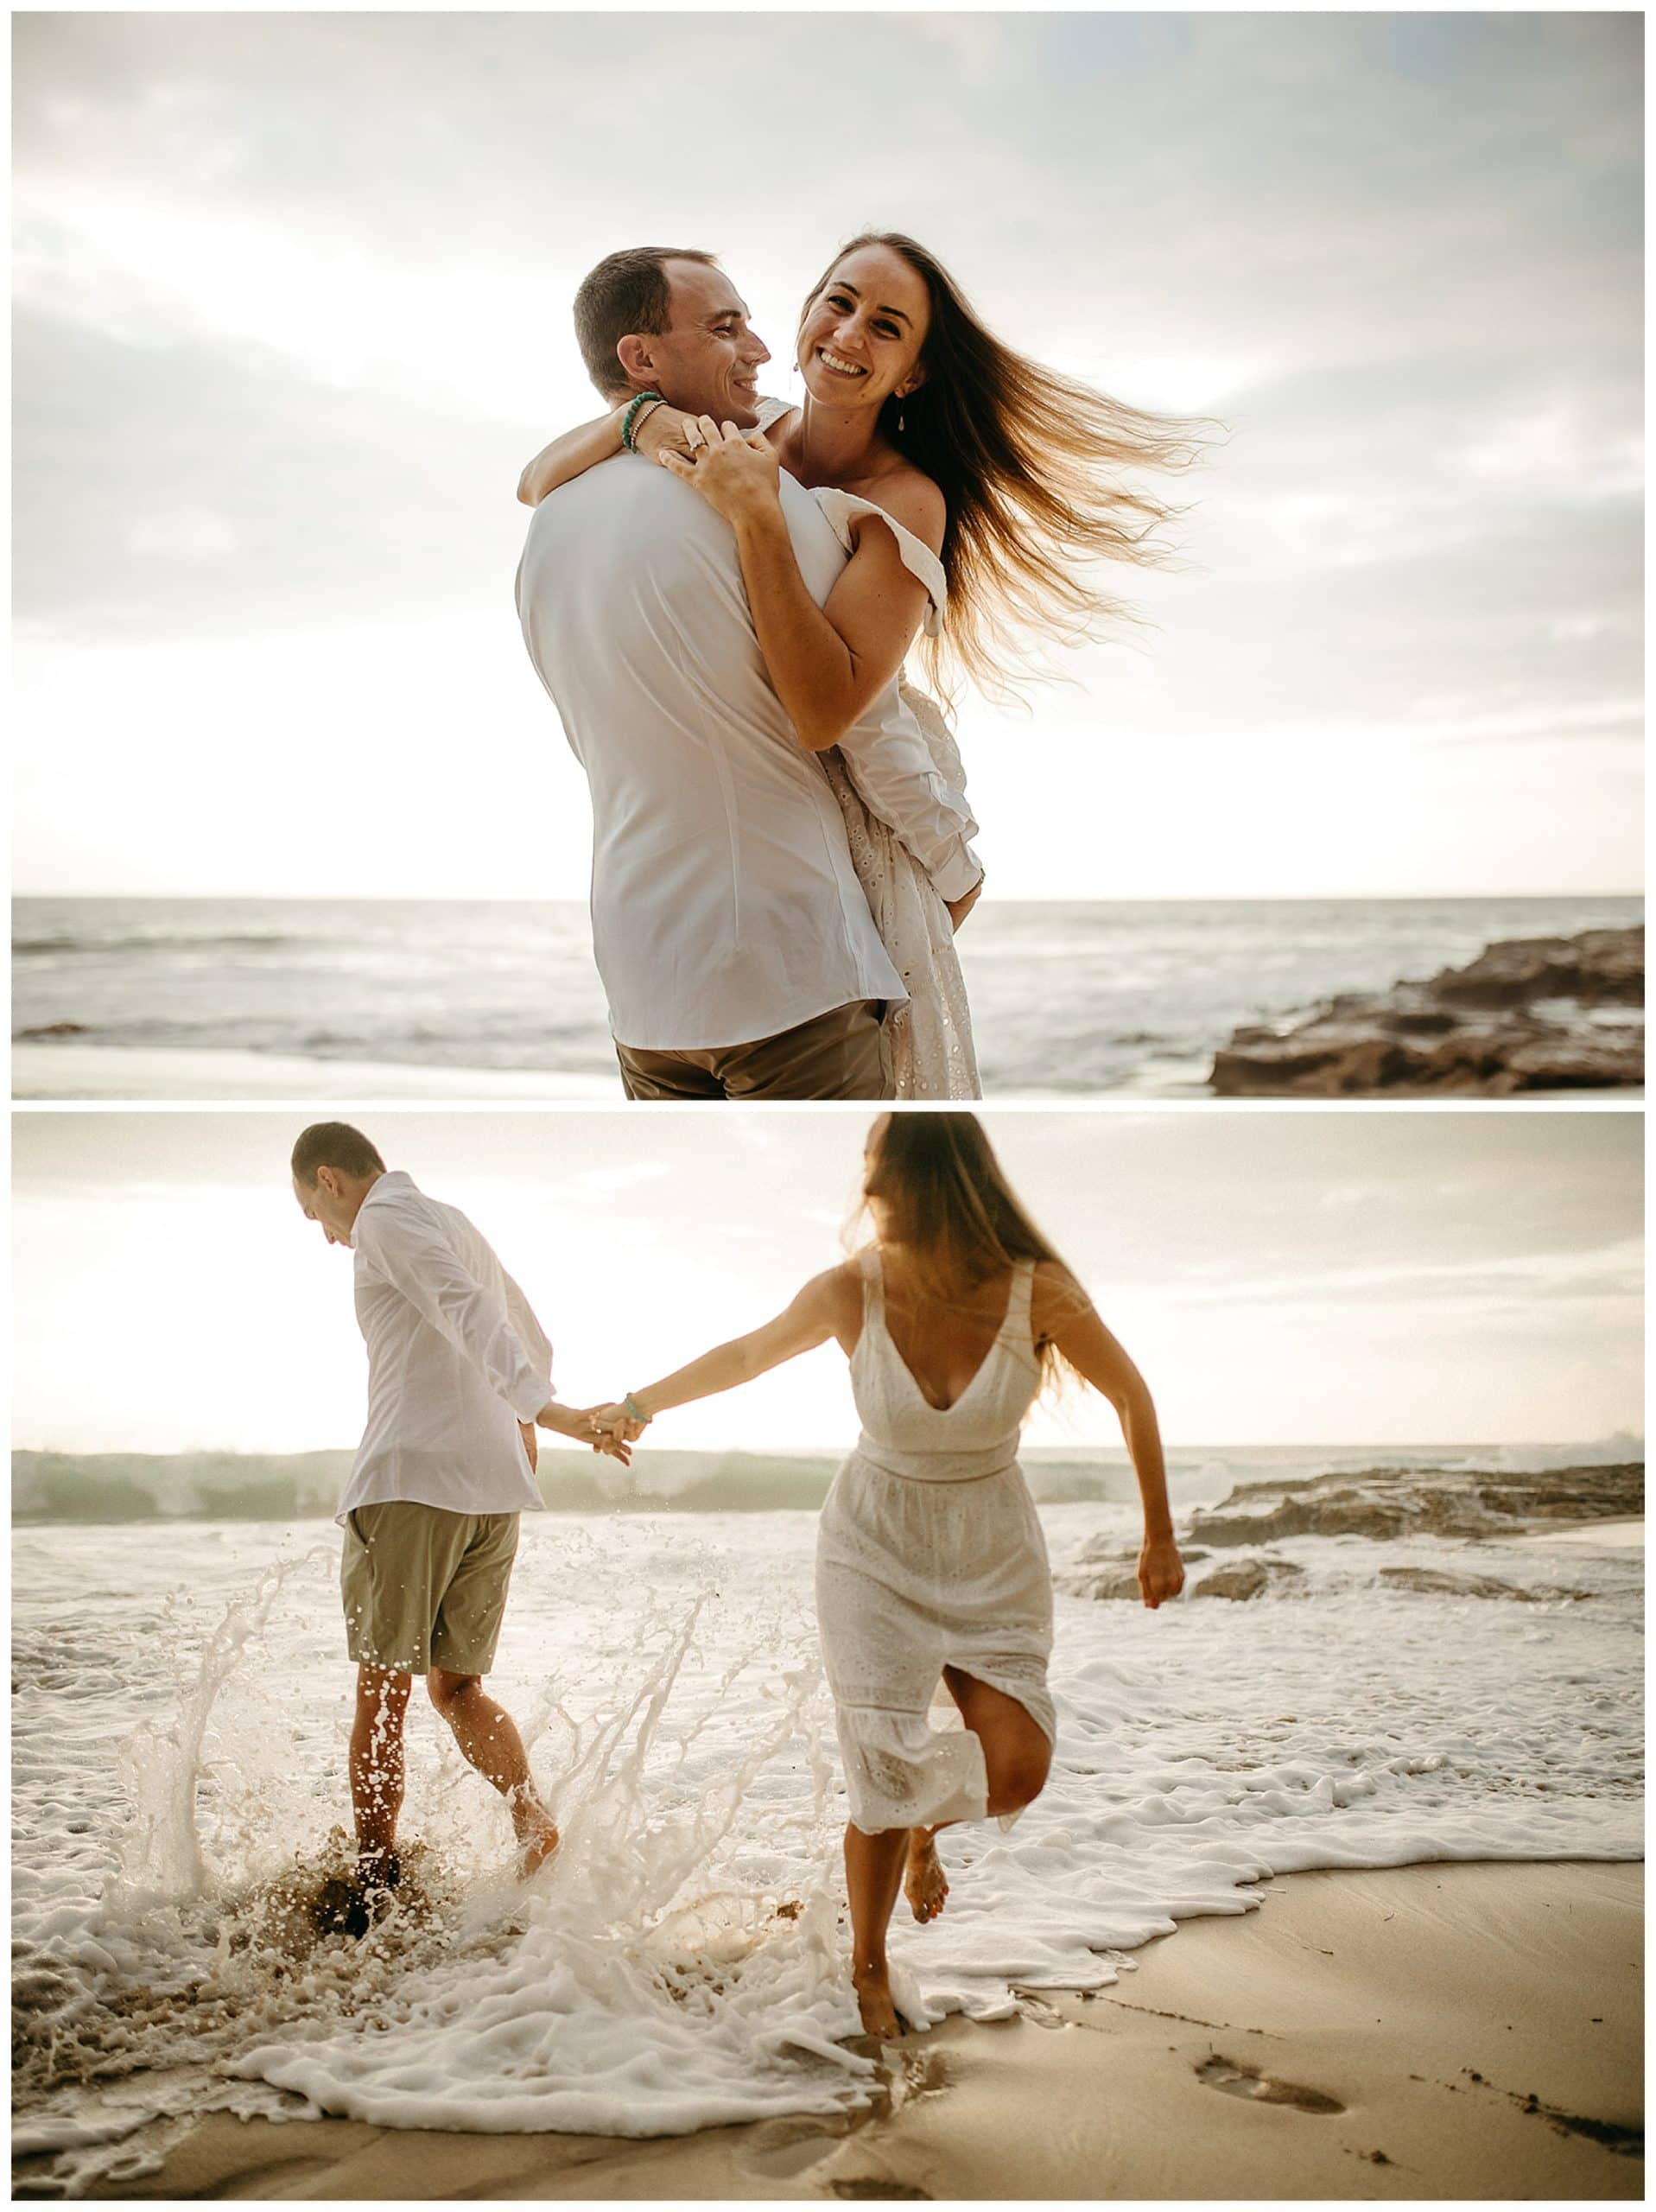 couple dancing and running on beach